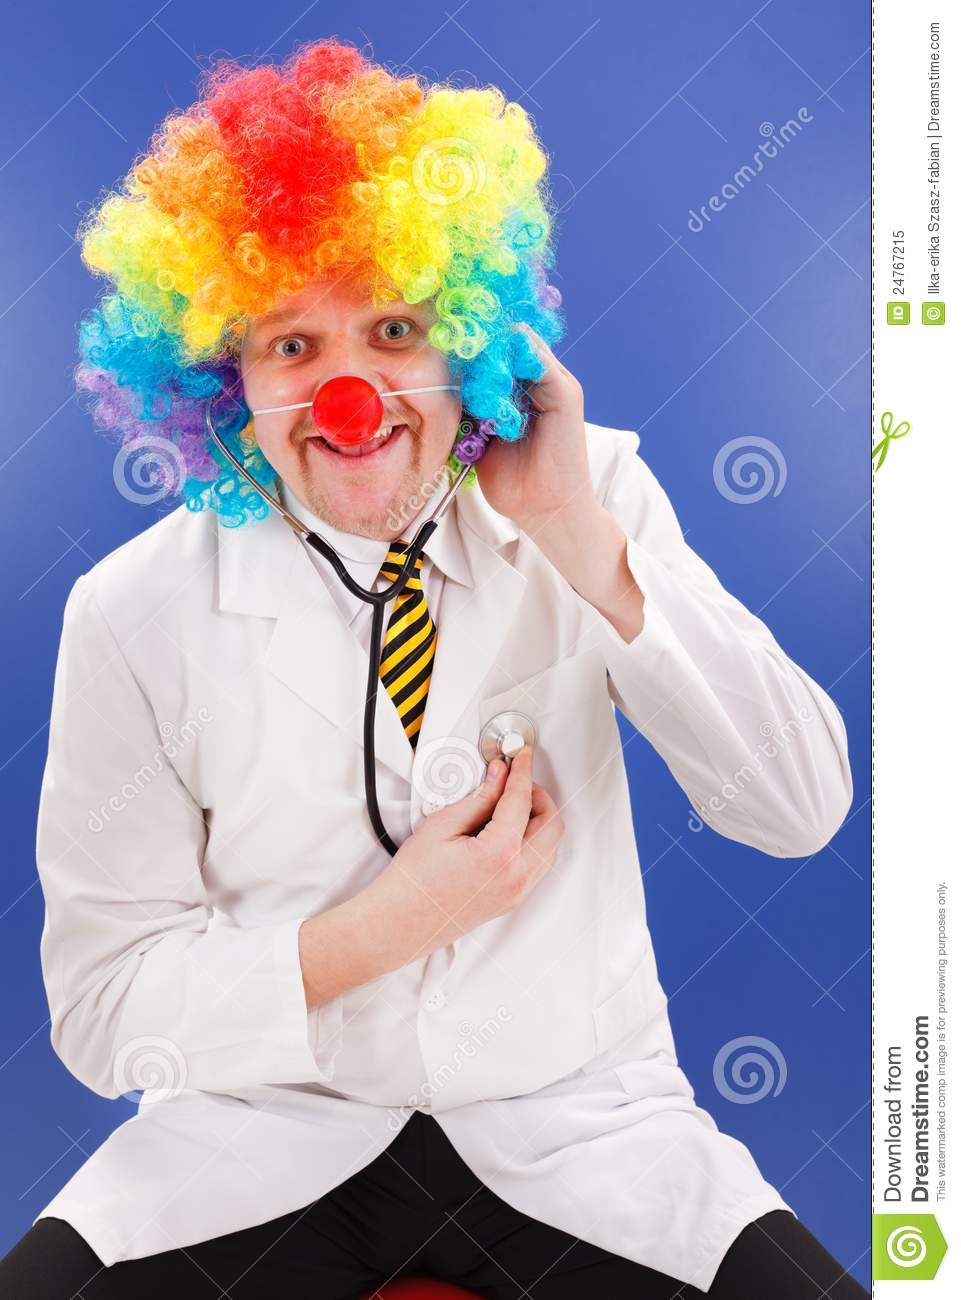 Clown Doctor On Blue With Stethoscope Royalty Free Stock Photo - Image ...